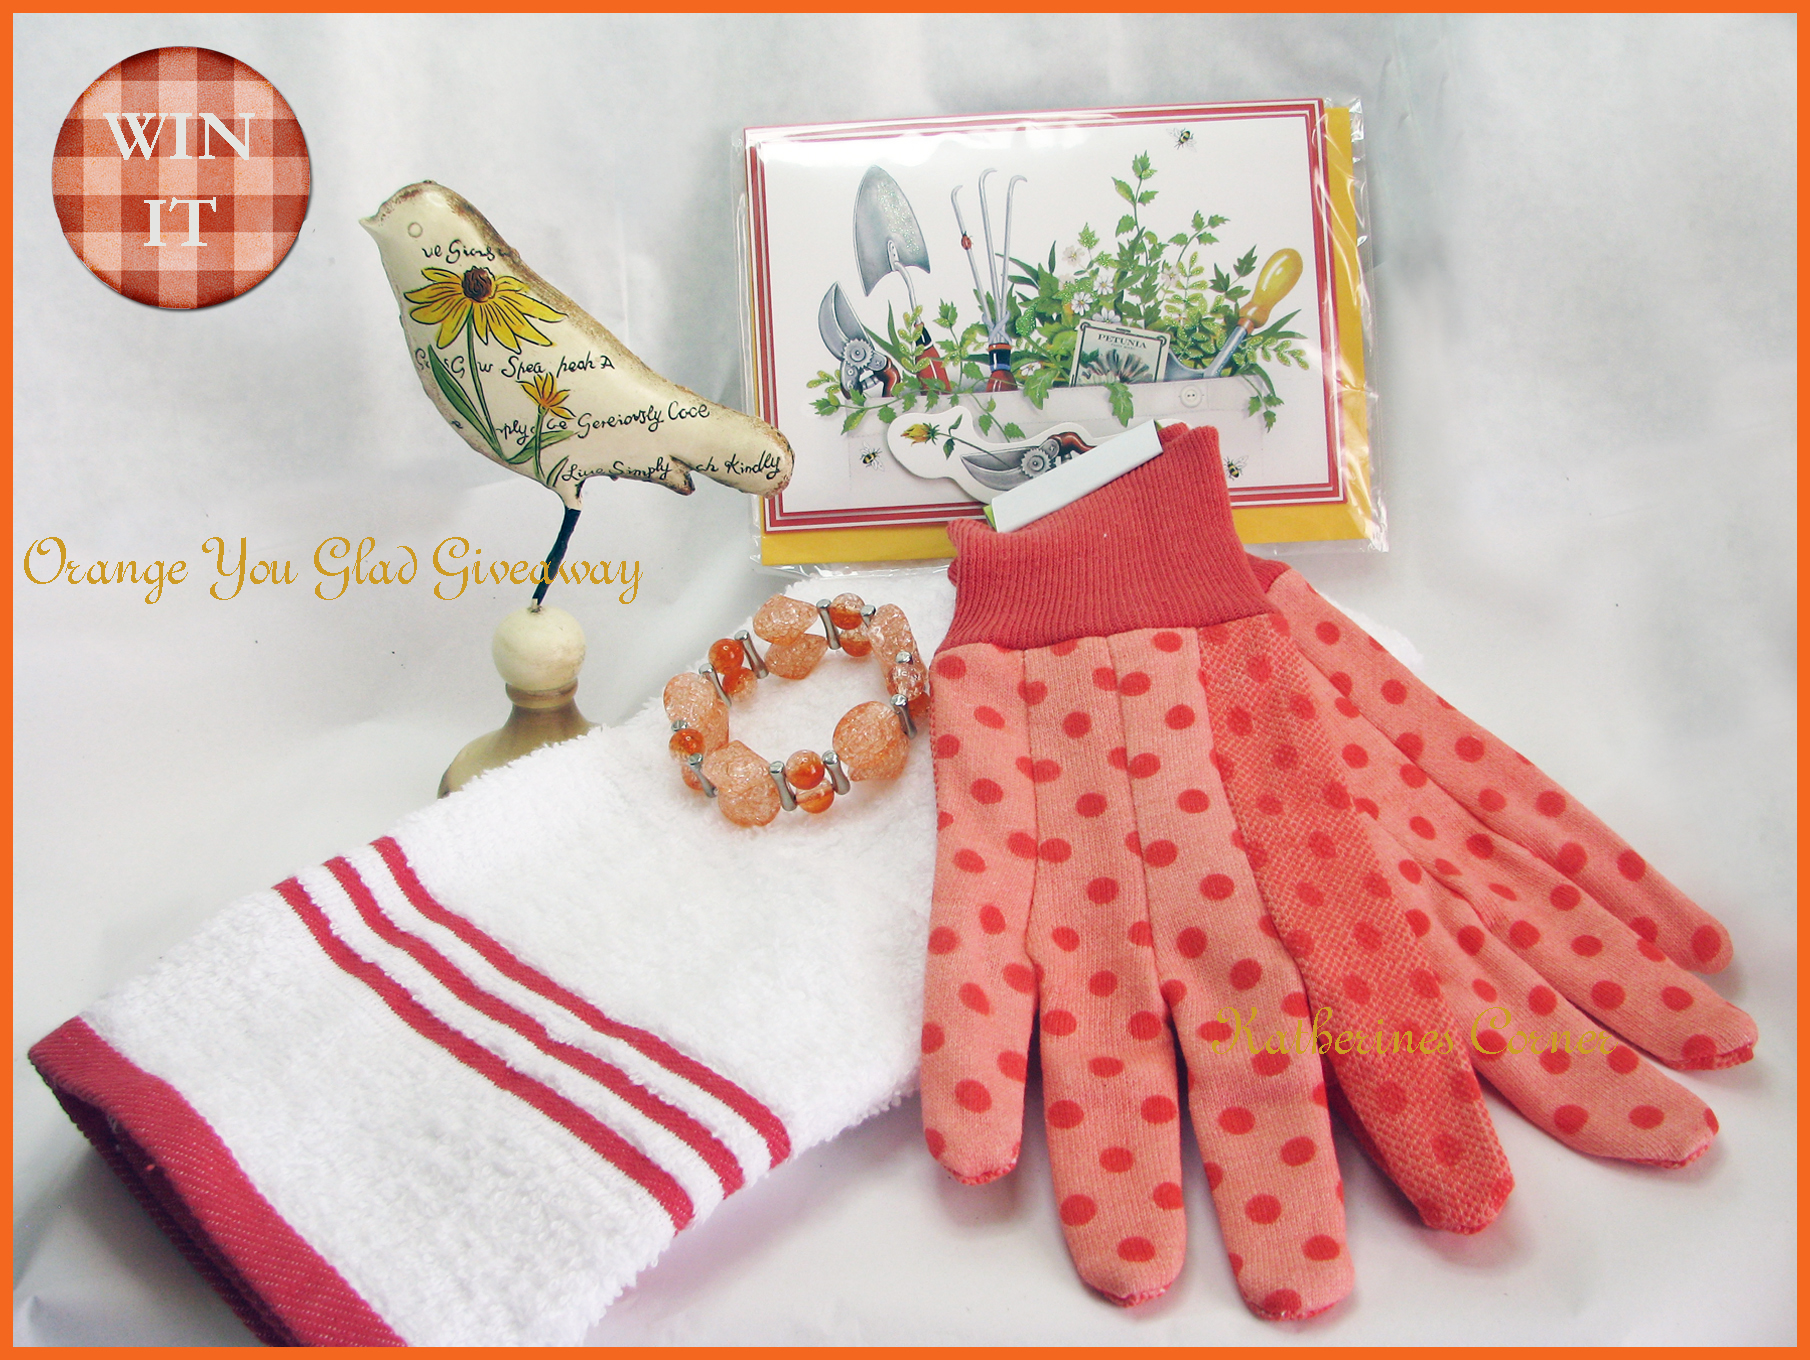 New Giveaway at Katherines Corner, Orange You Glad Giveaway